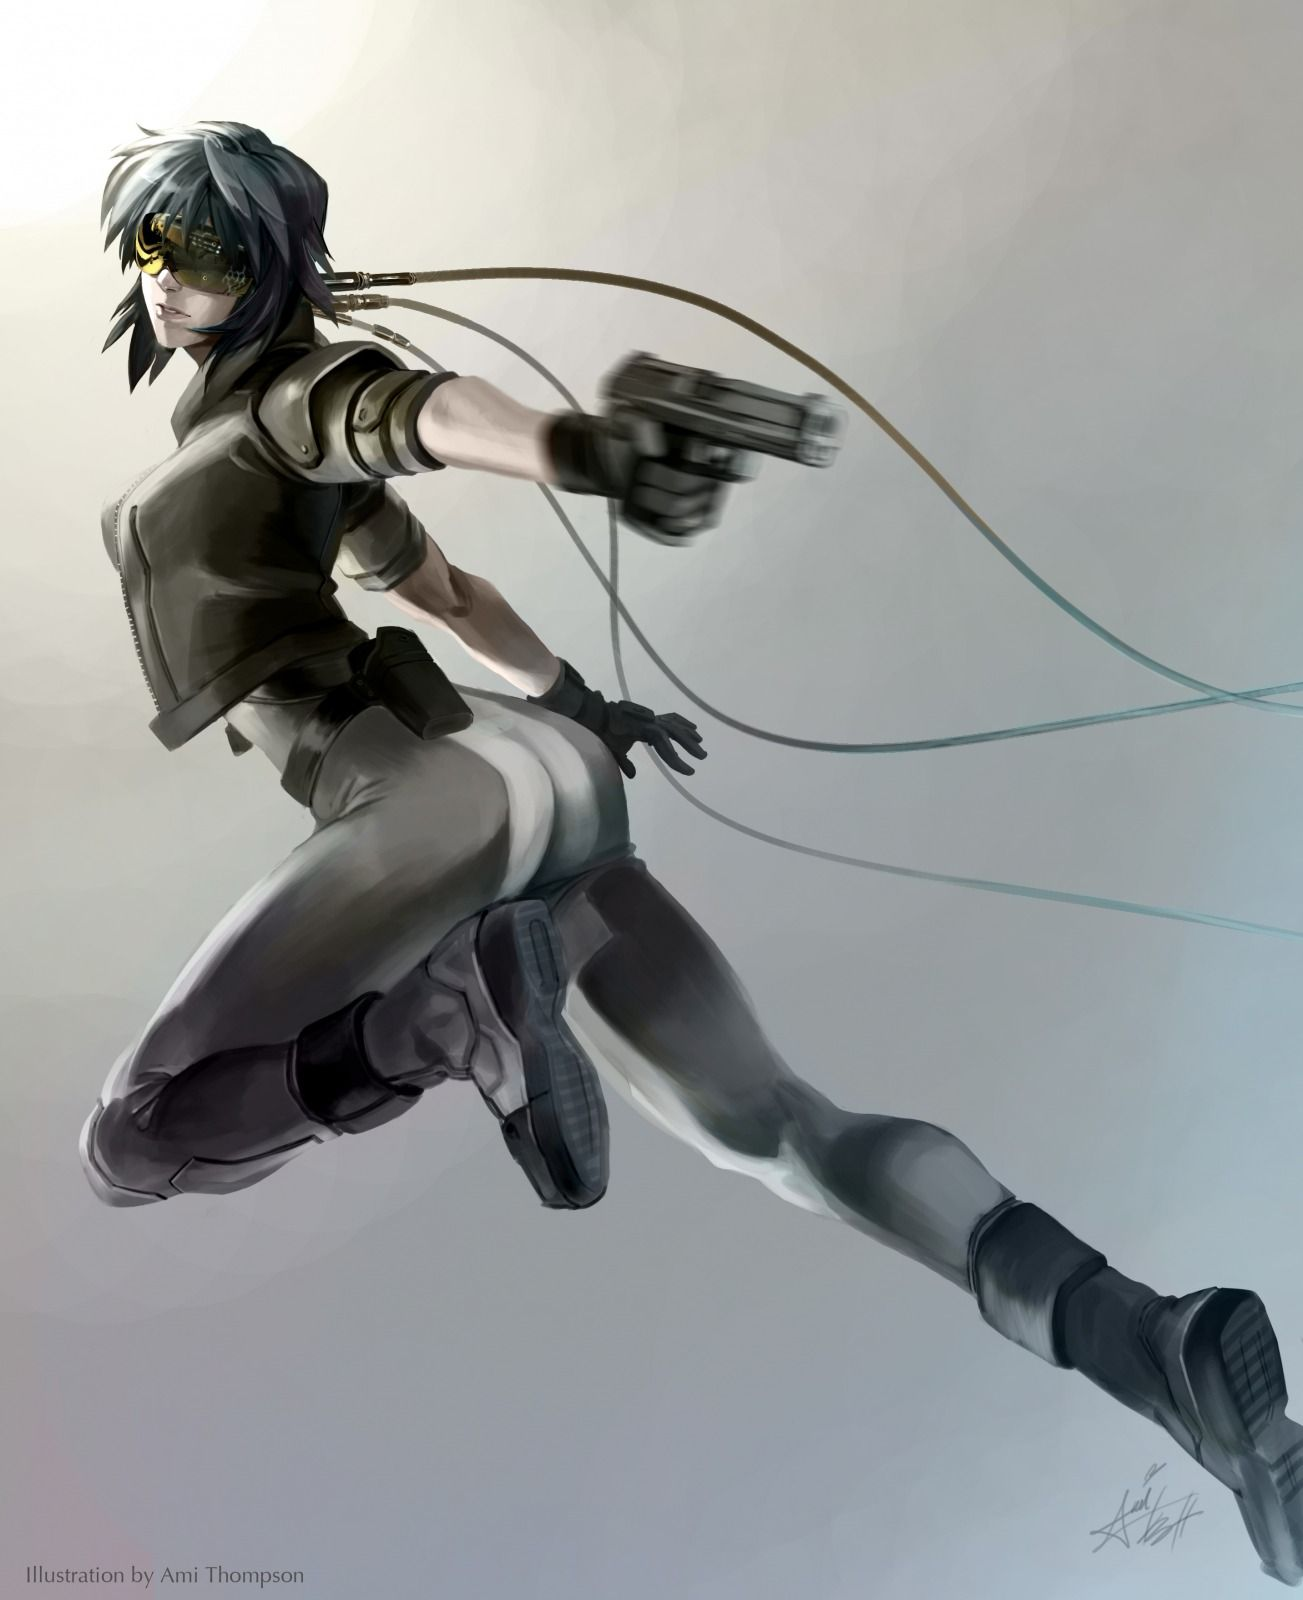 Ghost In The Shell Picture Big By Ami Thompson Pekepeke0 Ghost In The Shell Anime Ghost Anime